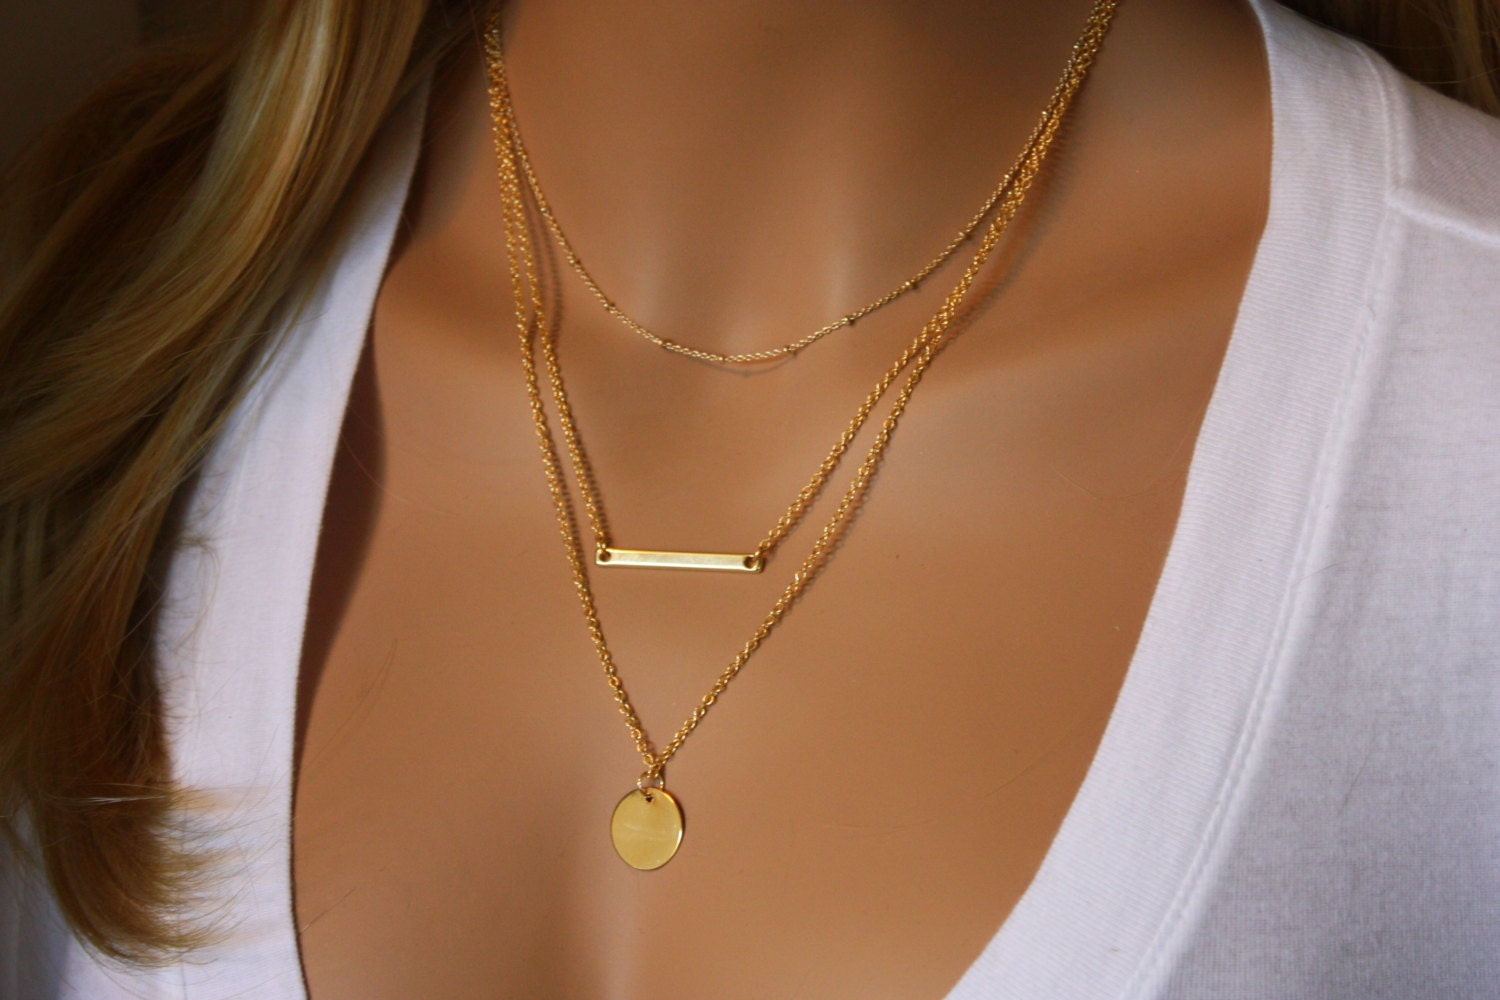 Permalink to 3 Layer Necklace Gold